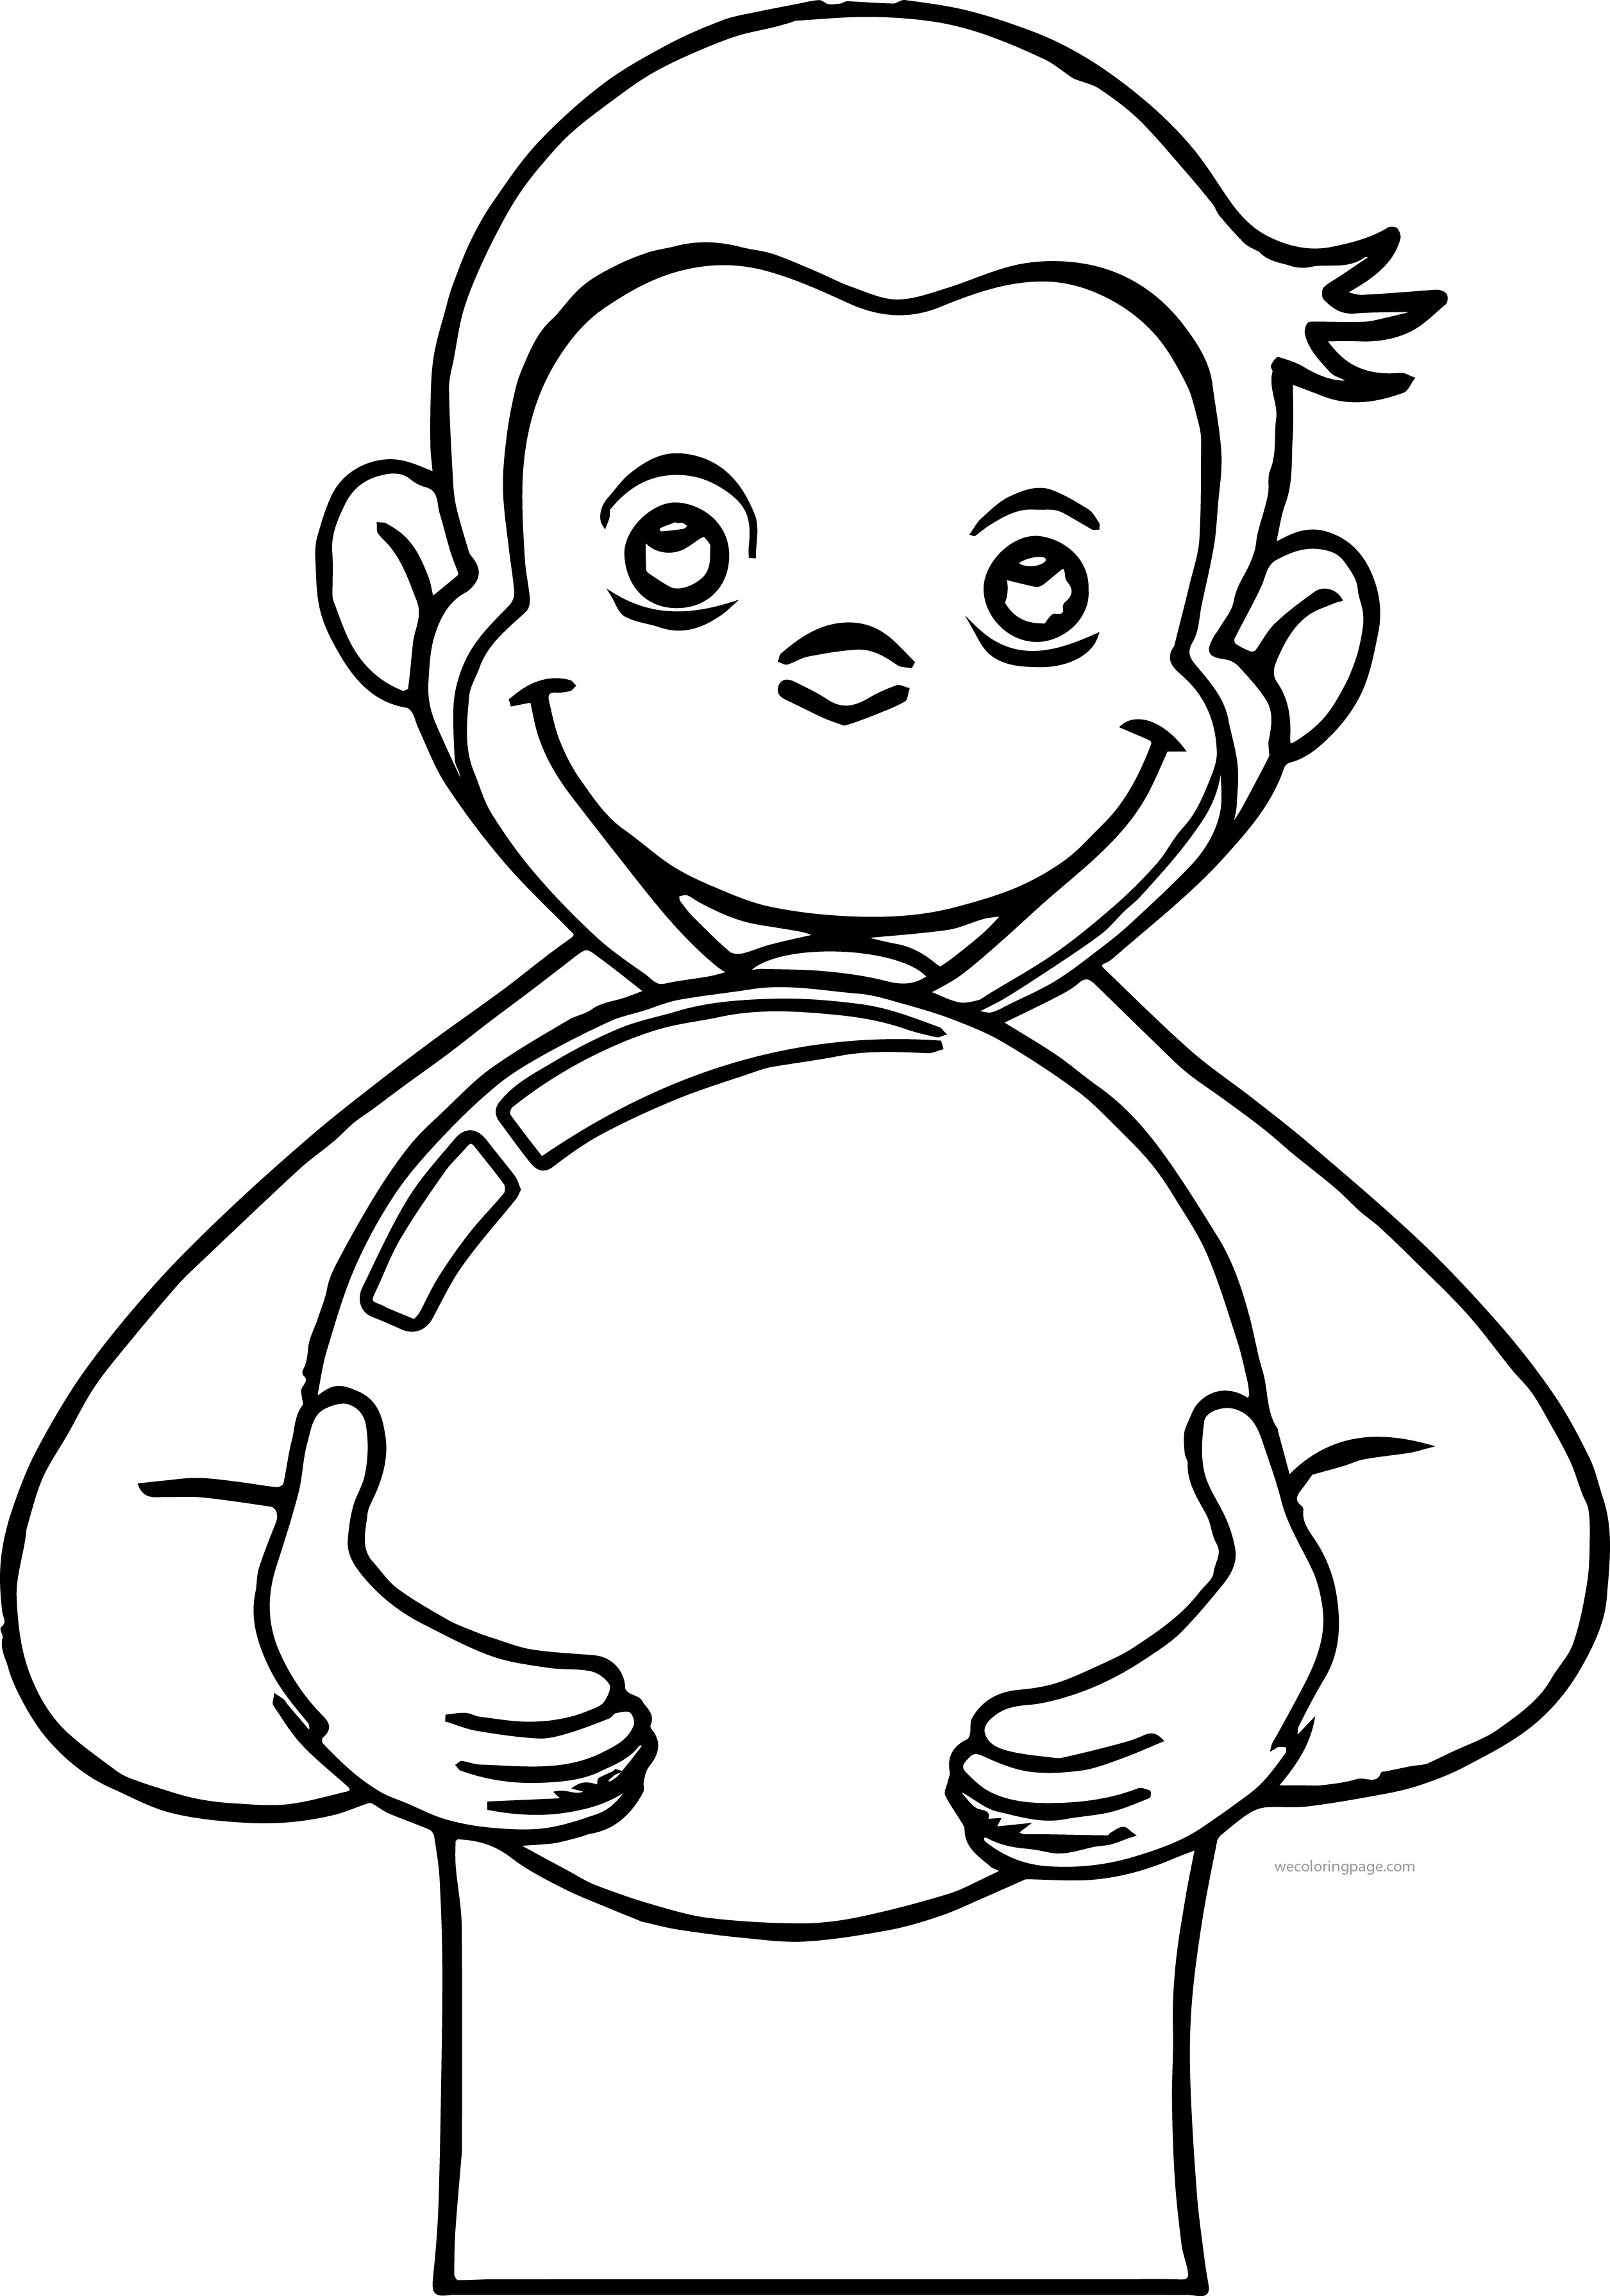 George Monkey Playing Balloon Coloring Page